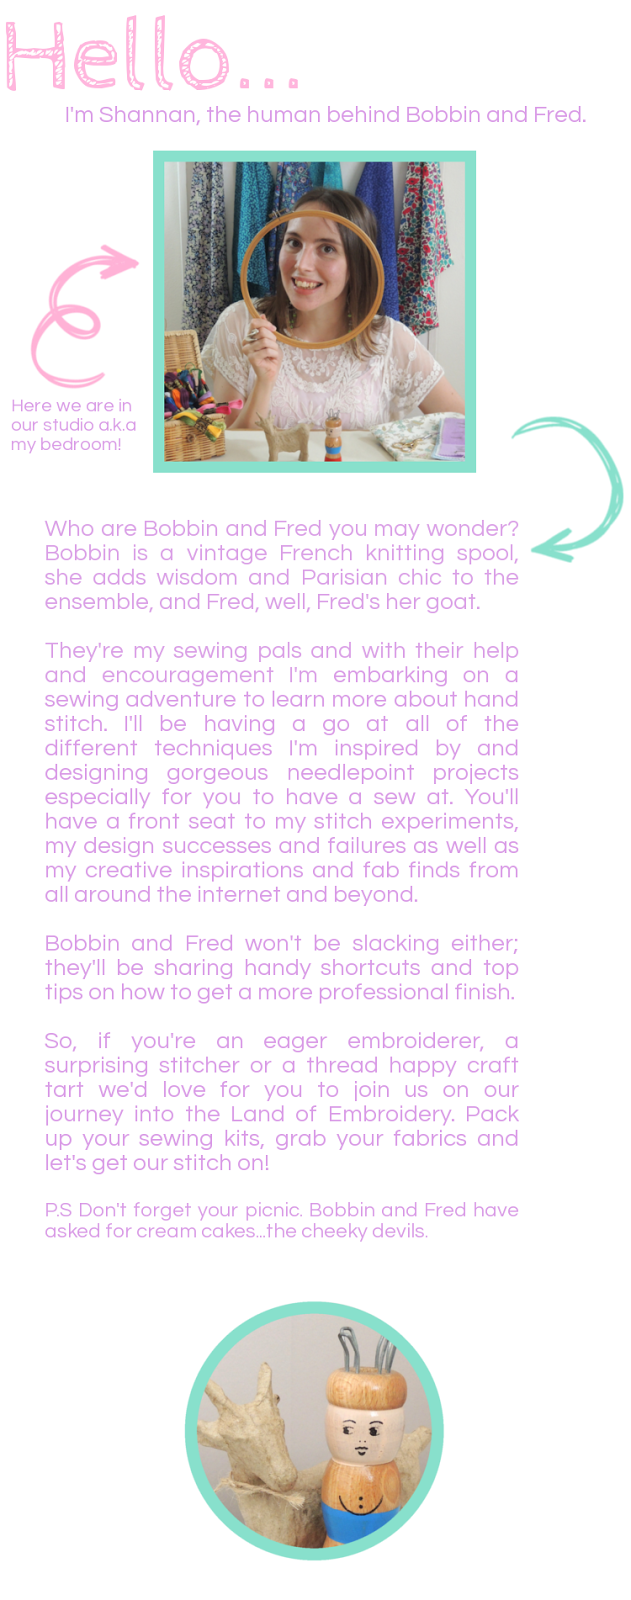 About Shannan and description of sewing with bobbin and fred hand embroidery blog